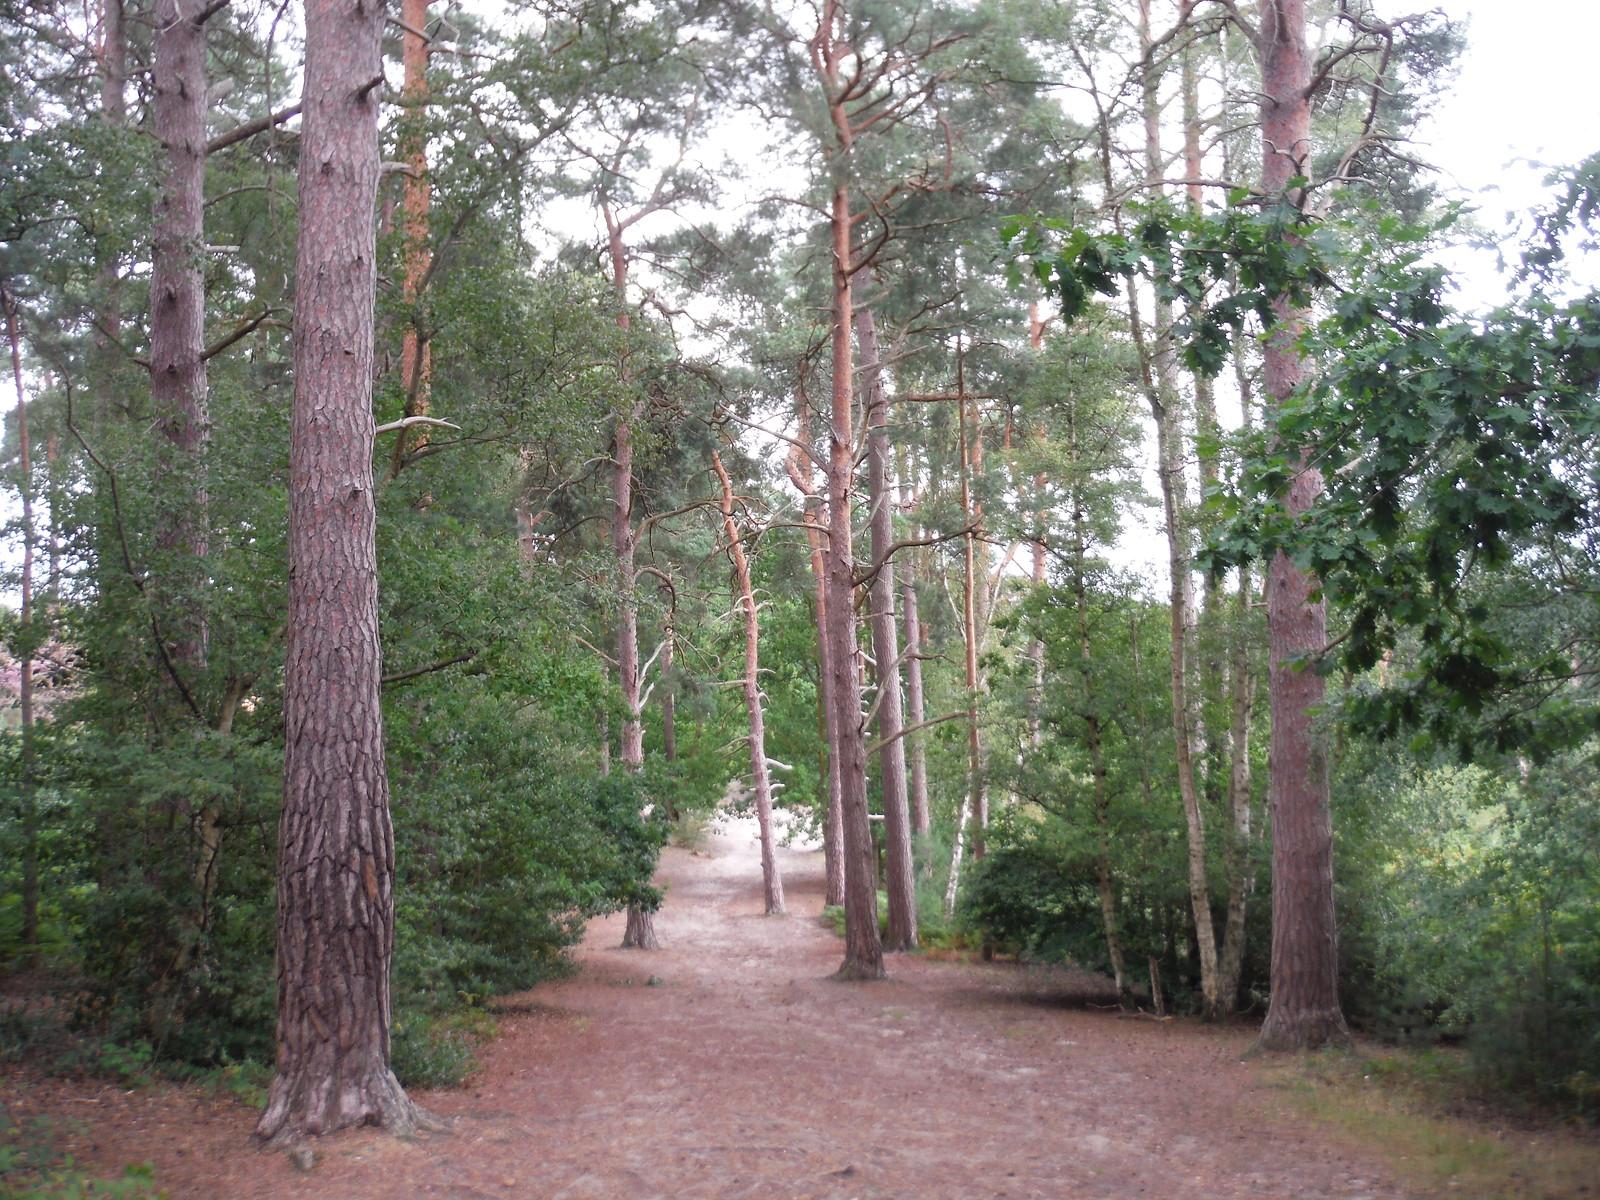 Oxshott Heath SWC Short Walk 17 - Oxshott Heath, Esher and West End Commons